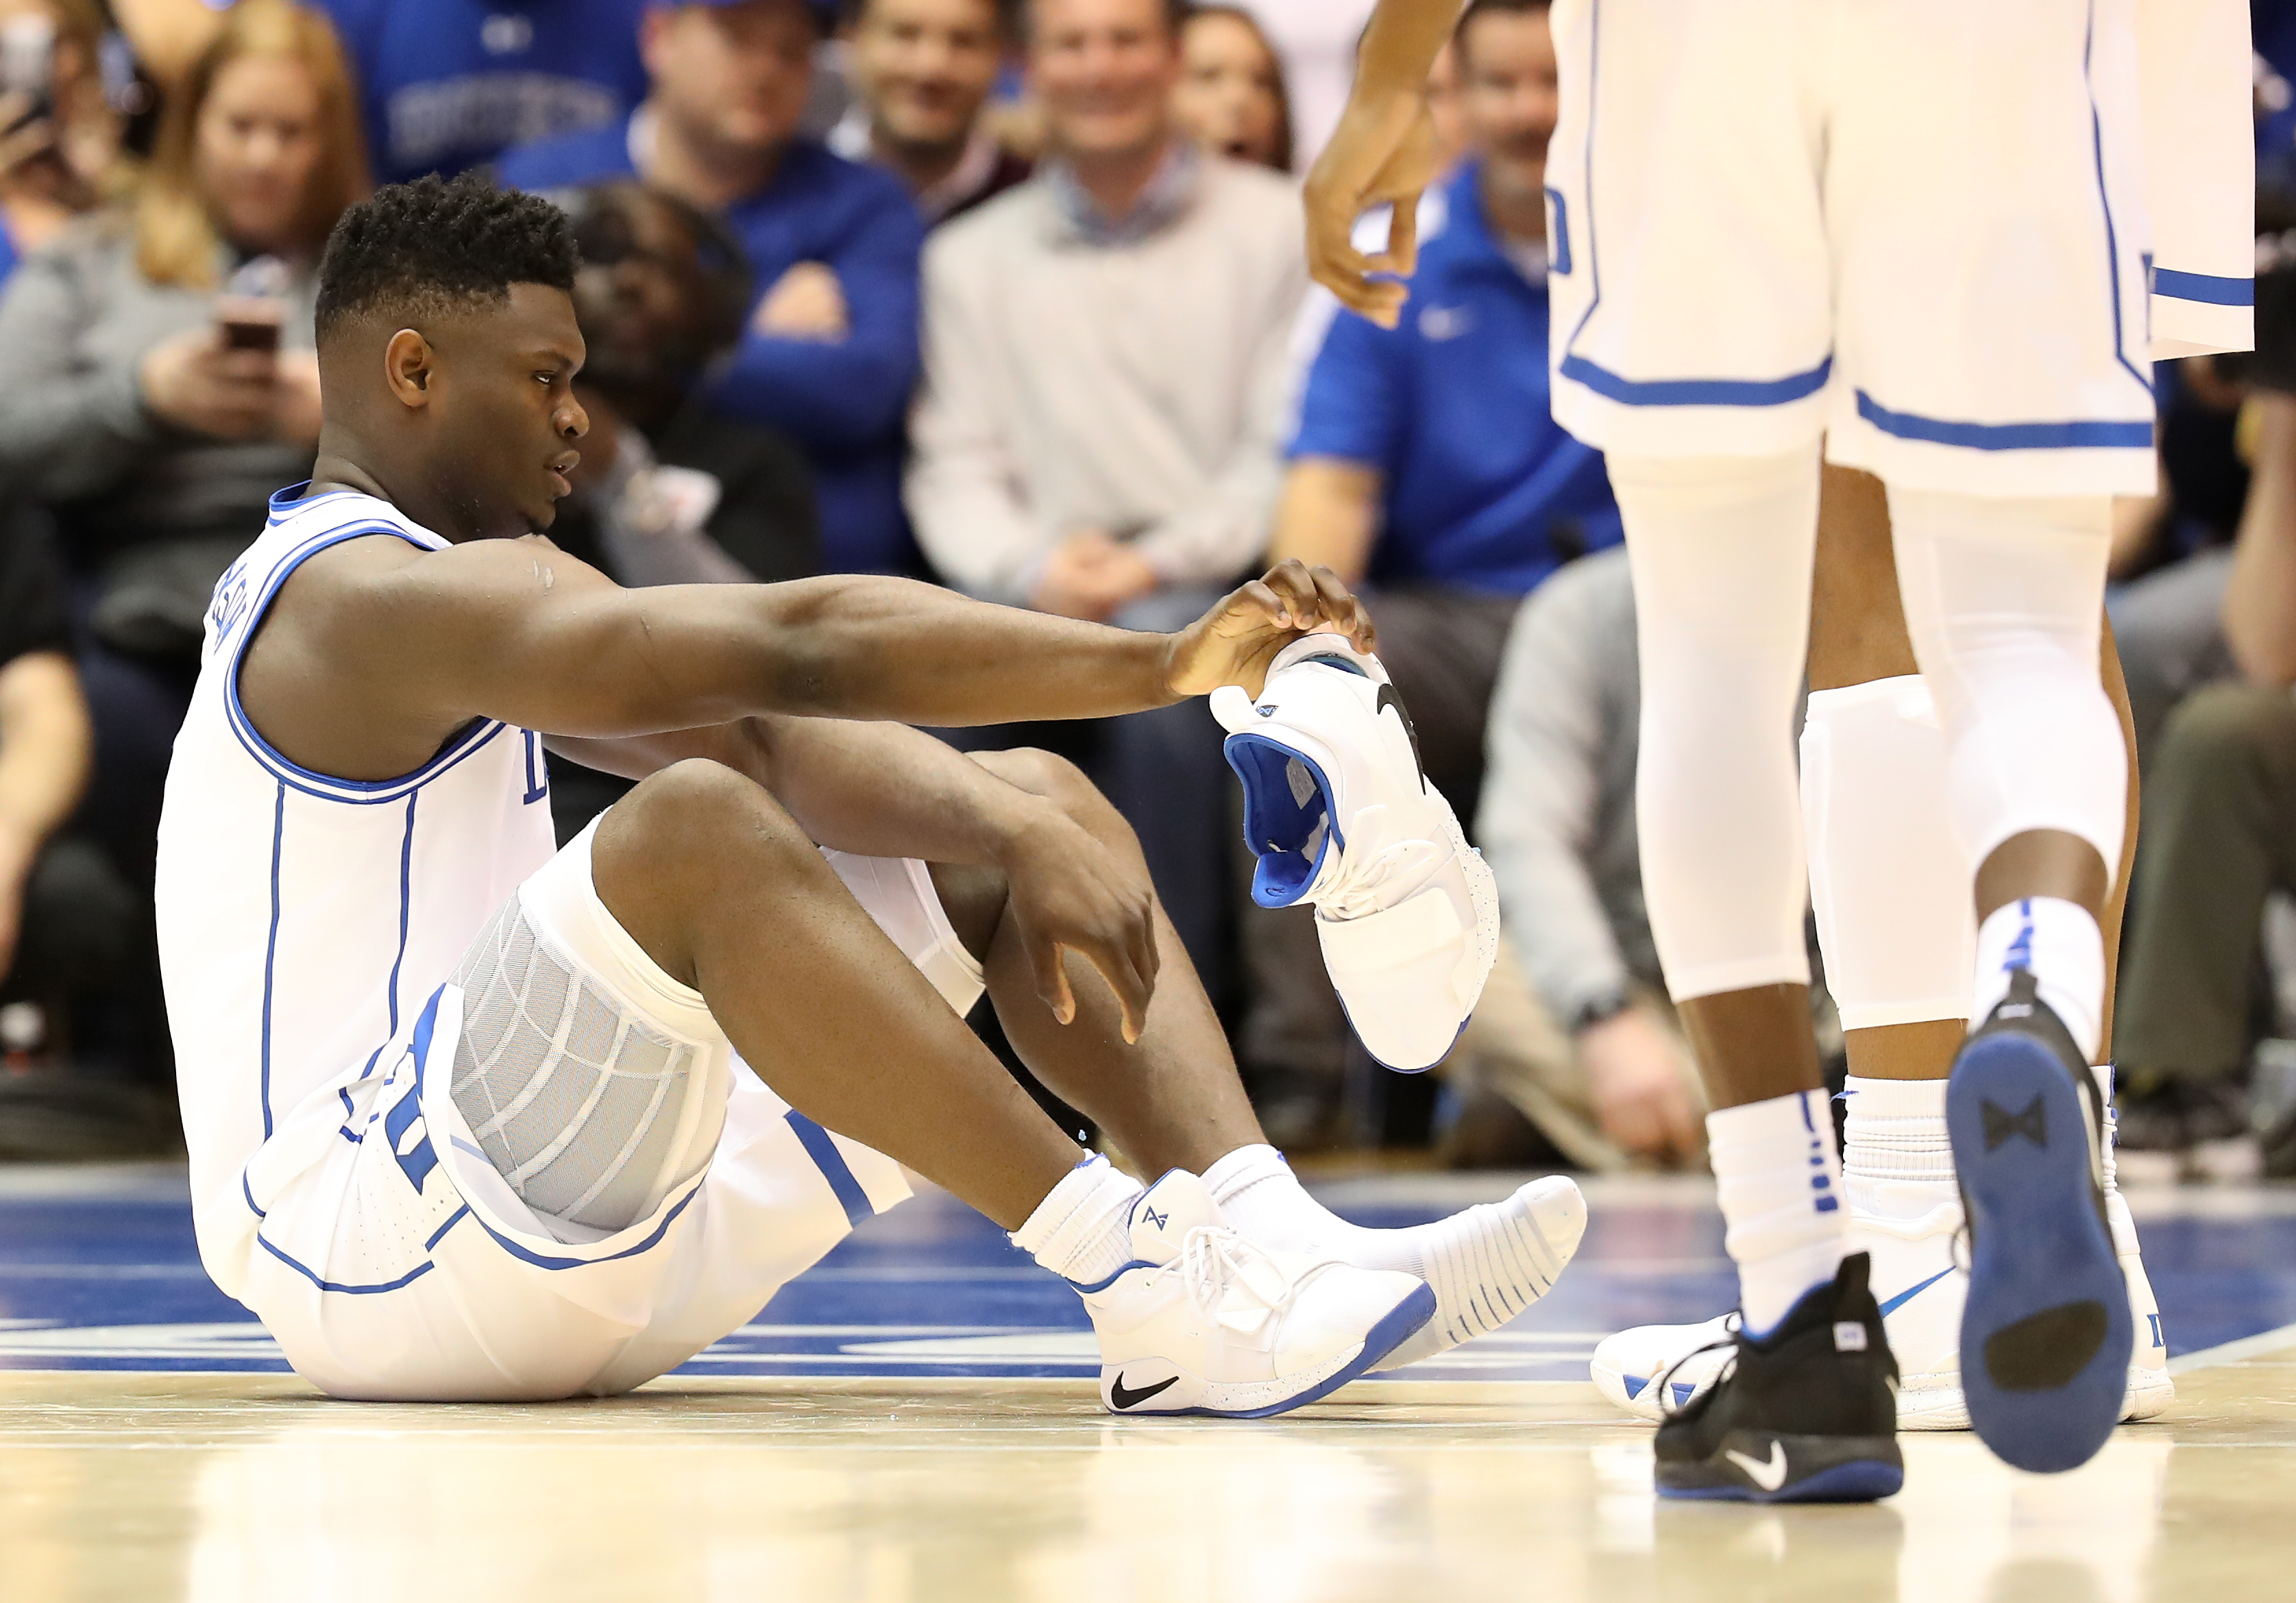 Duke's Zion Williamson reacts after his shoe breaks during a game on Feb. 20, 2019, in Durham, N.C.